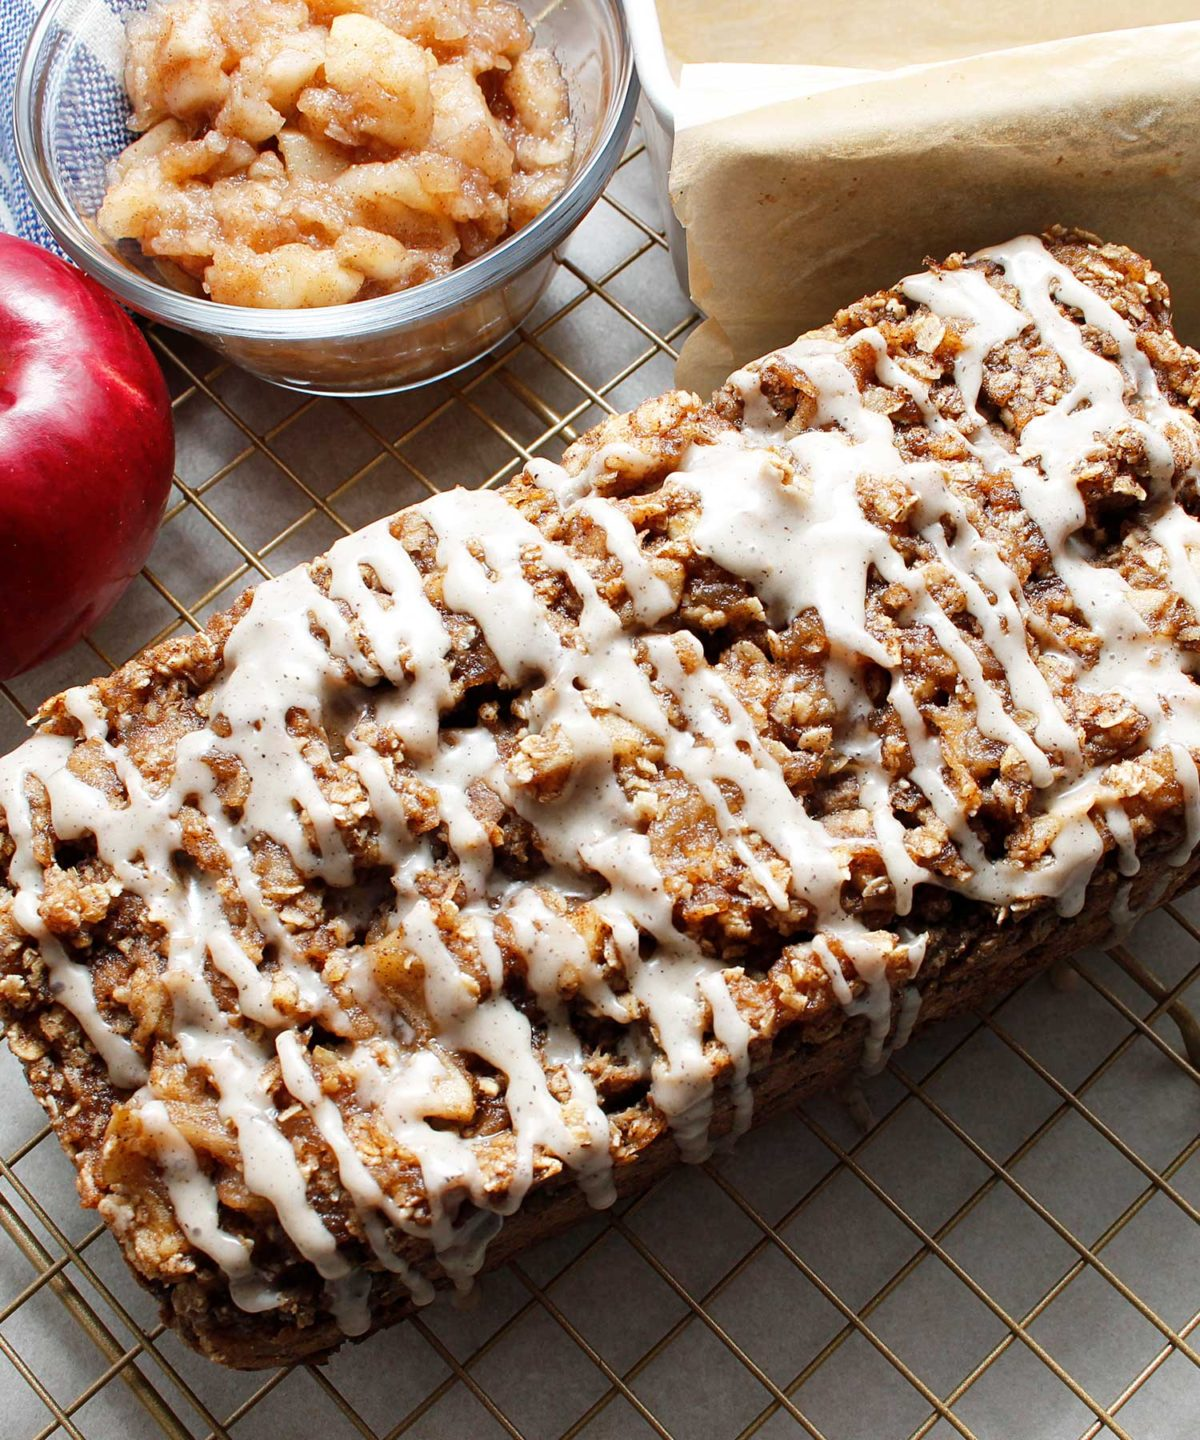 The finished apple crisp bread with the most perfect drizzle of sugar and spice.